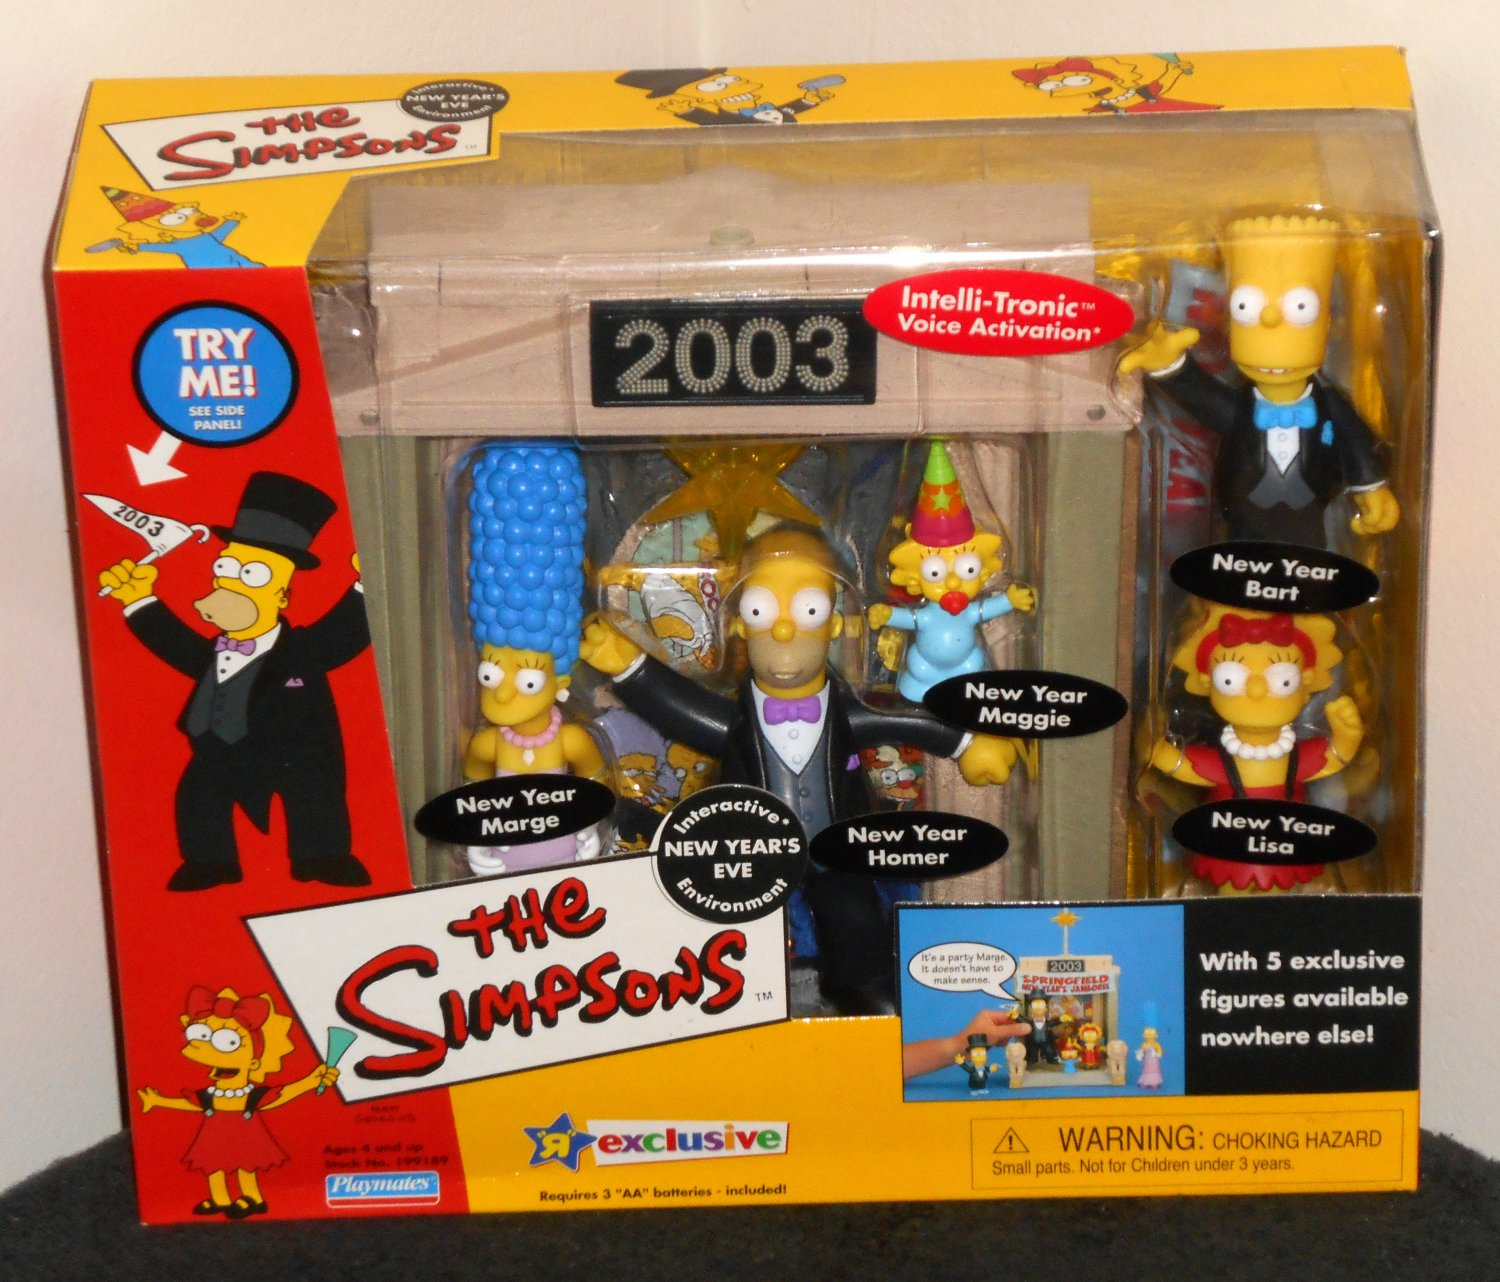 Simpsons WOS New Year's Eve Playset Environment Toys R Us Exclusive Playmates Toys 199189